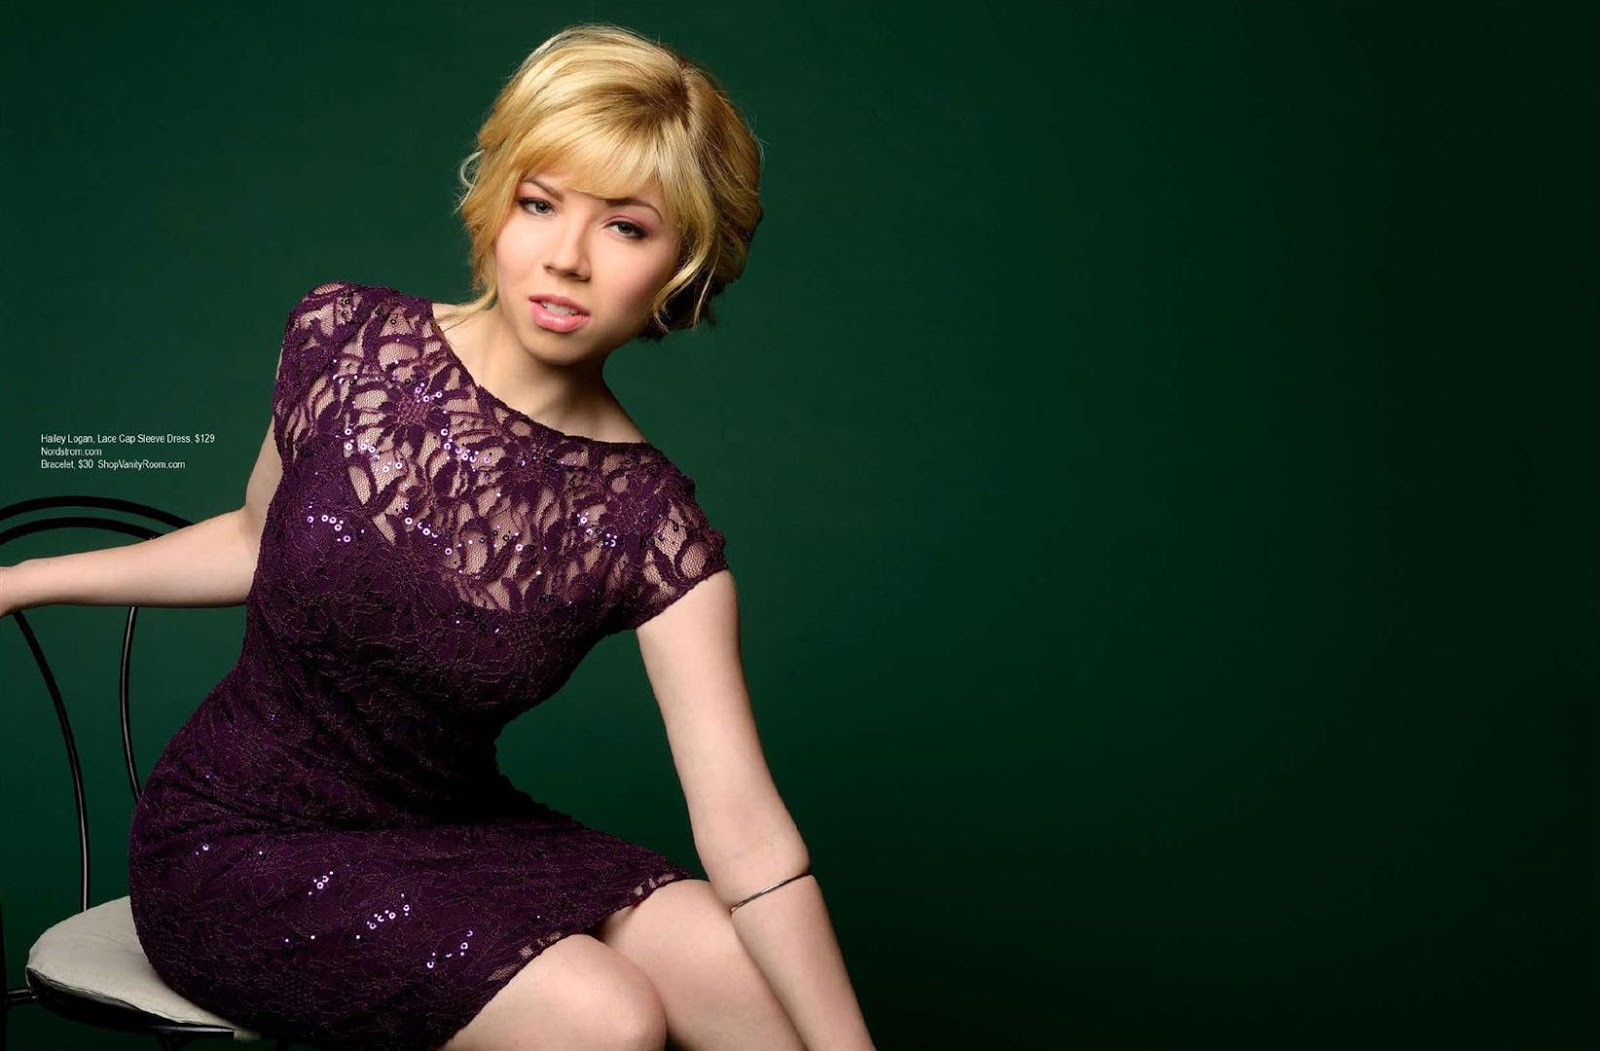 Jennette McCurdy # 12 | People Biography